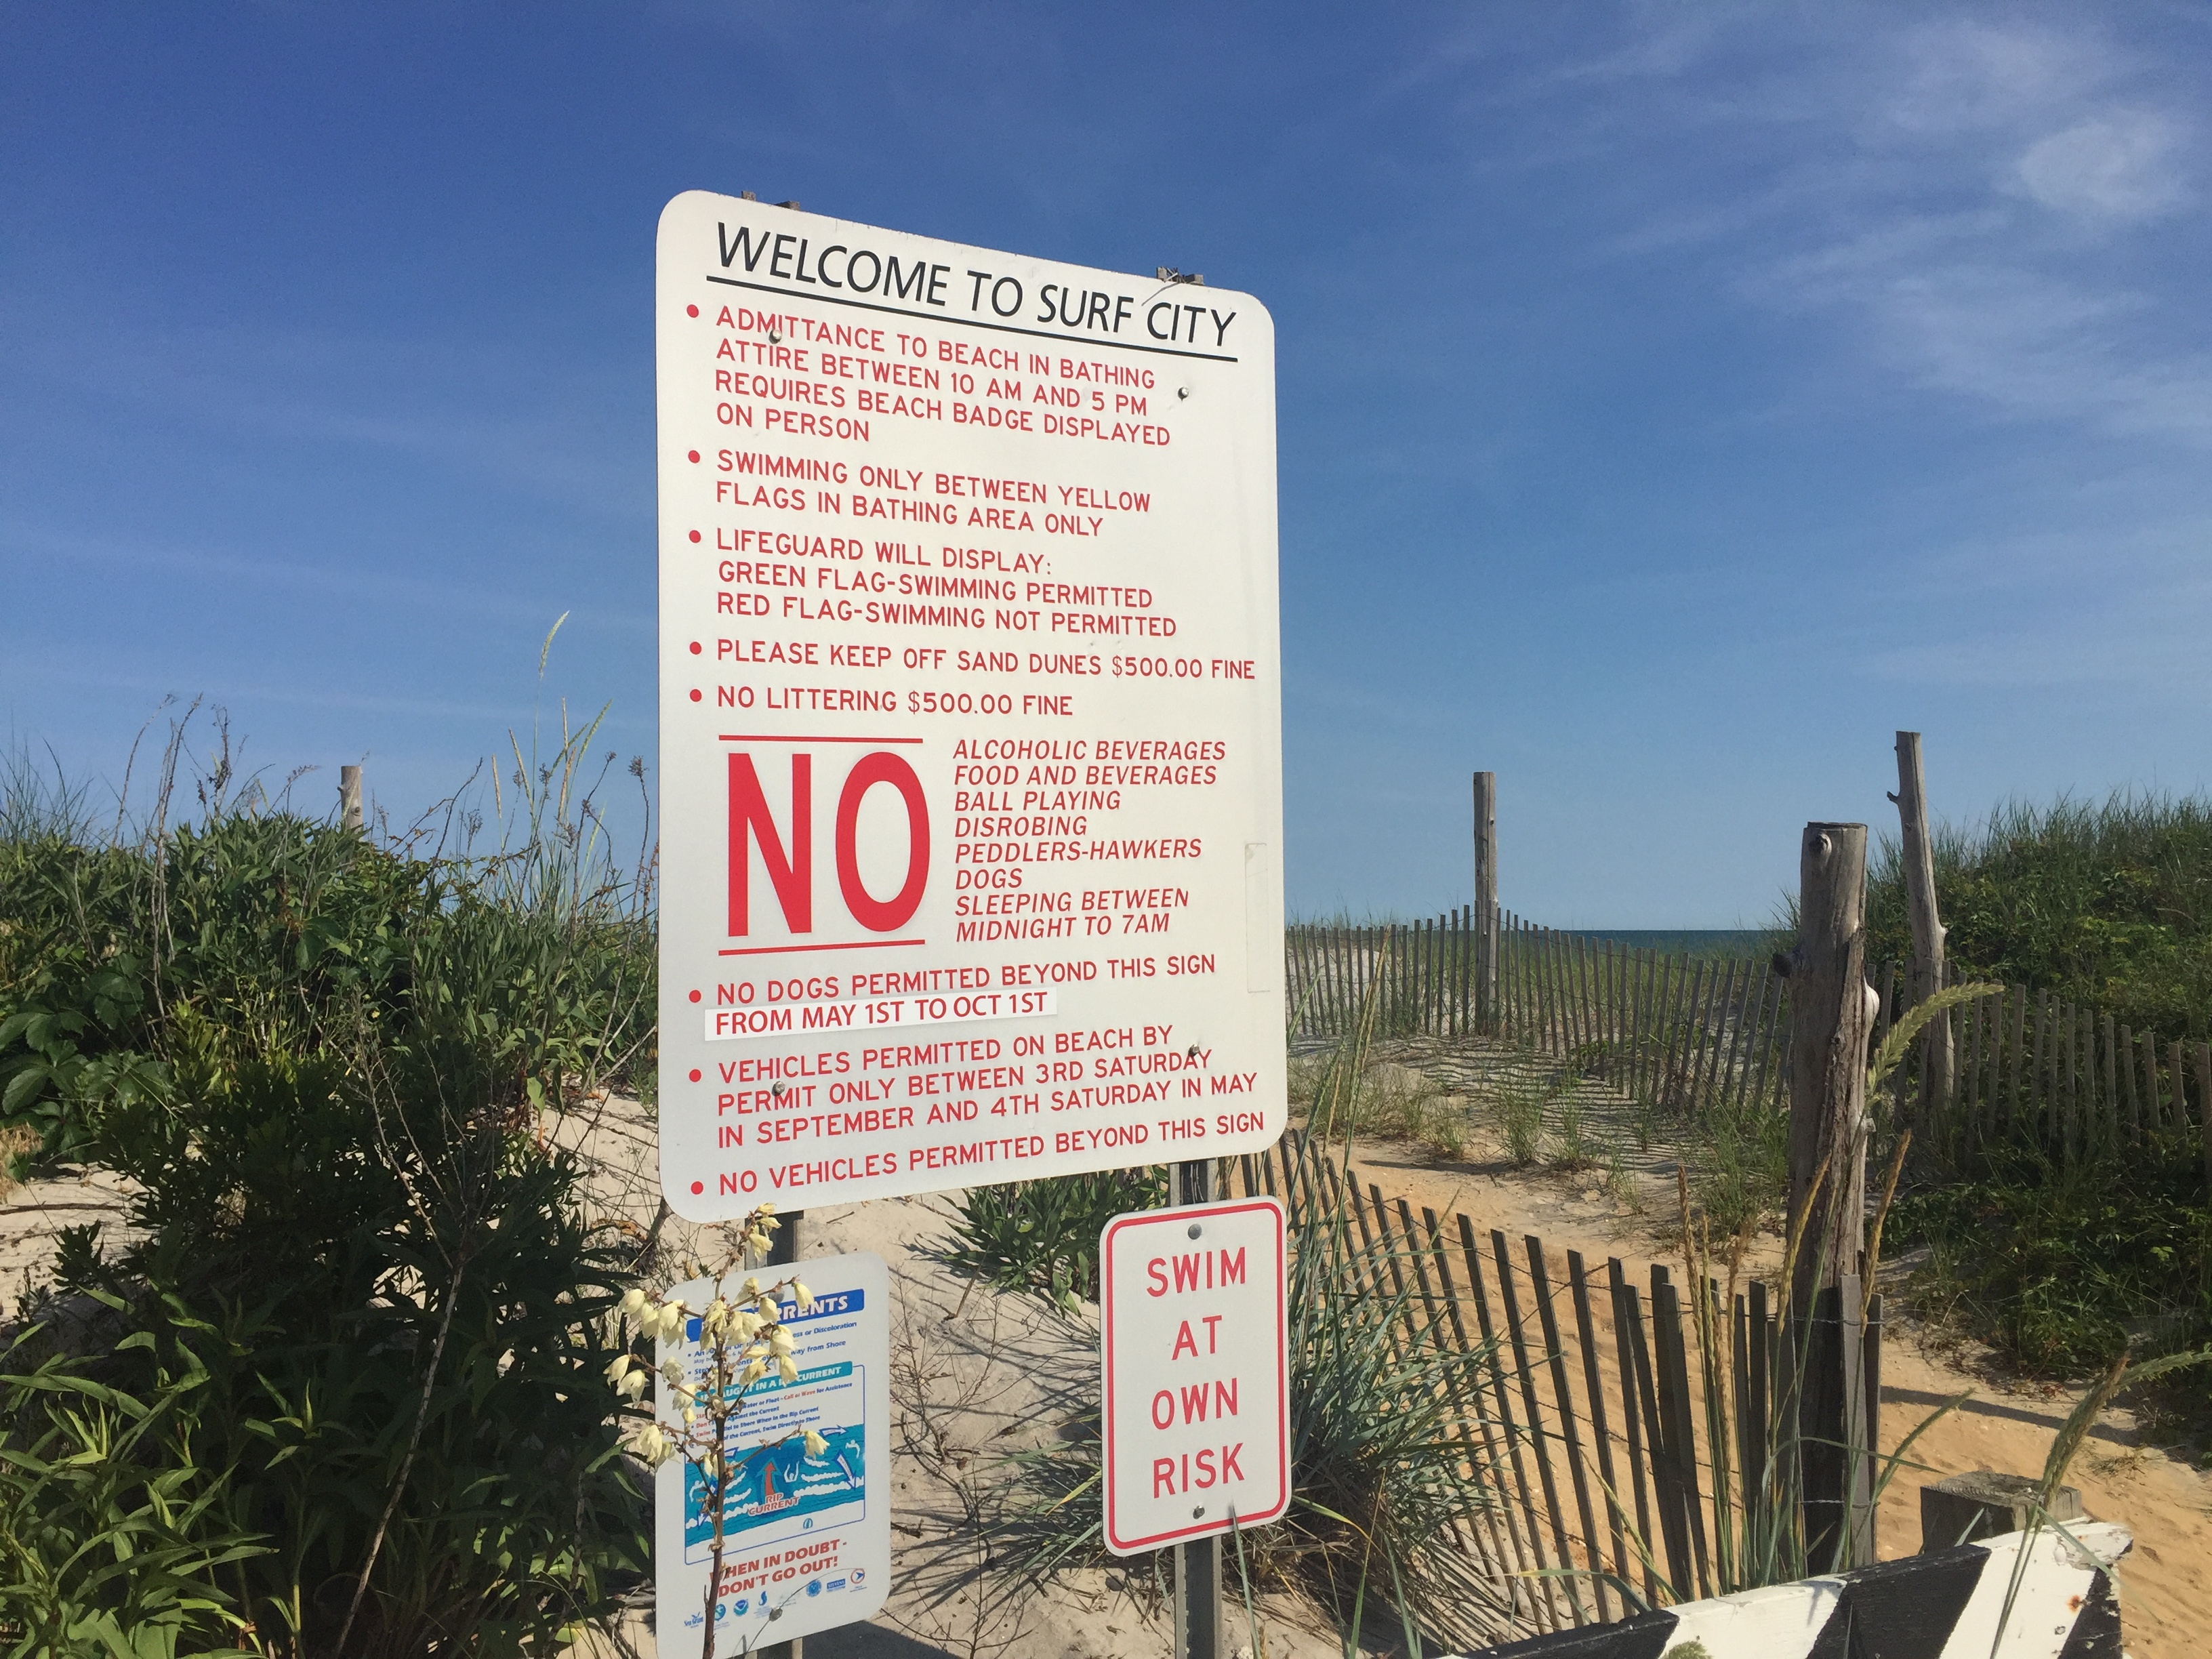 jersey beach restrictions